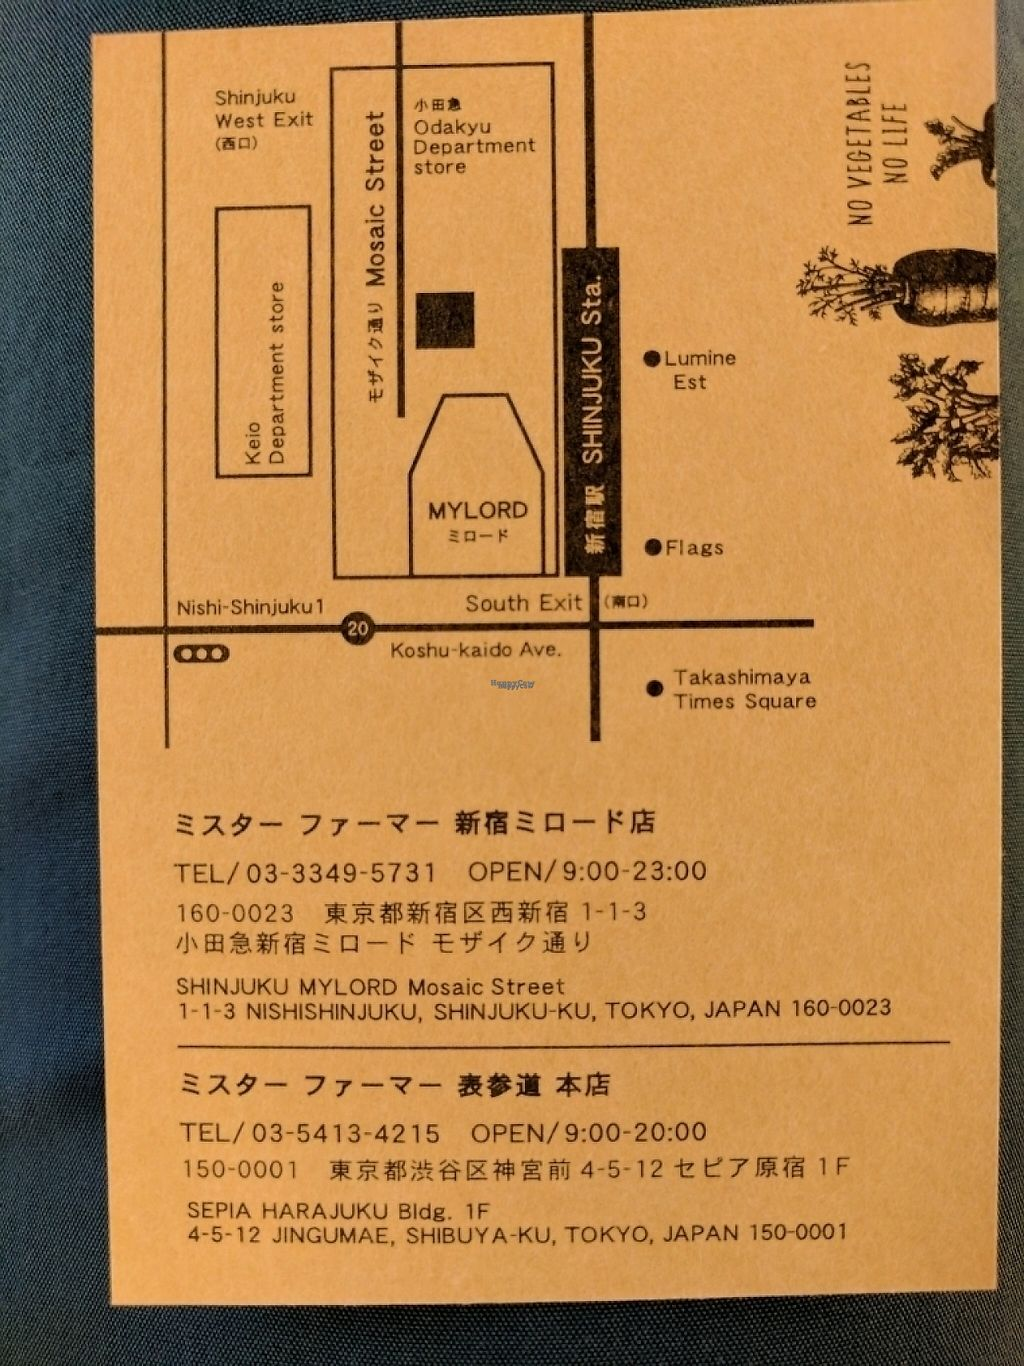 """Photo of Mr. Farmer - Roppongi  by <a href=""""/members/profile/ScottMorley"""">ScottMorley</a> <br/>business card with directions <br/> March 21, 2017  - <a href='/contact/abuse/image/76848/239062'>Report</a>"""